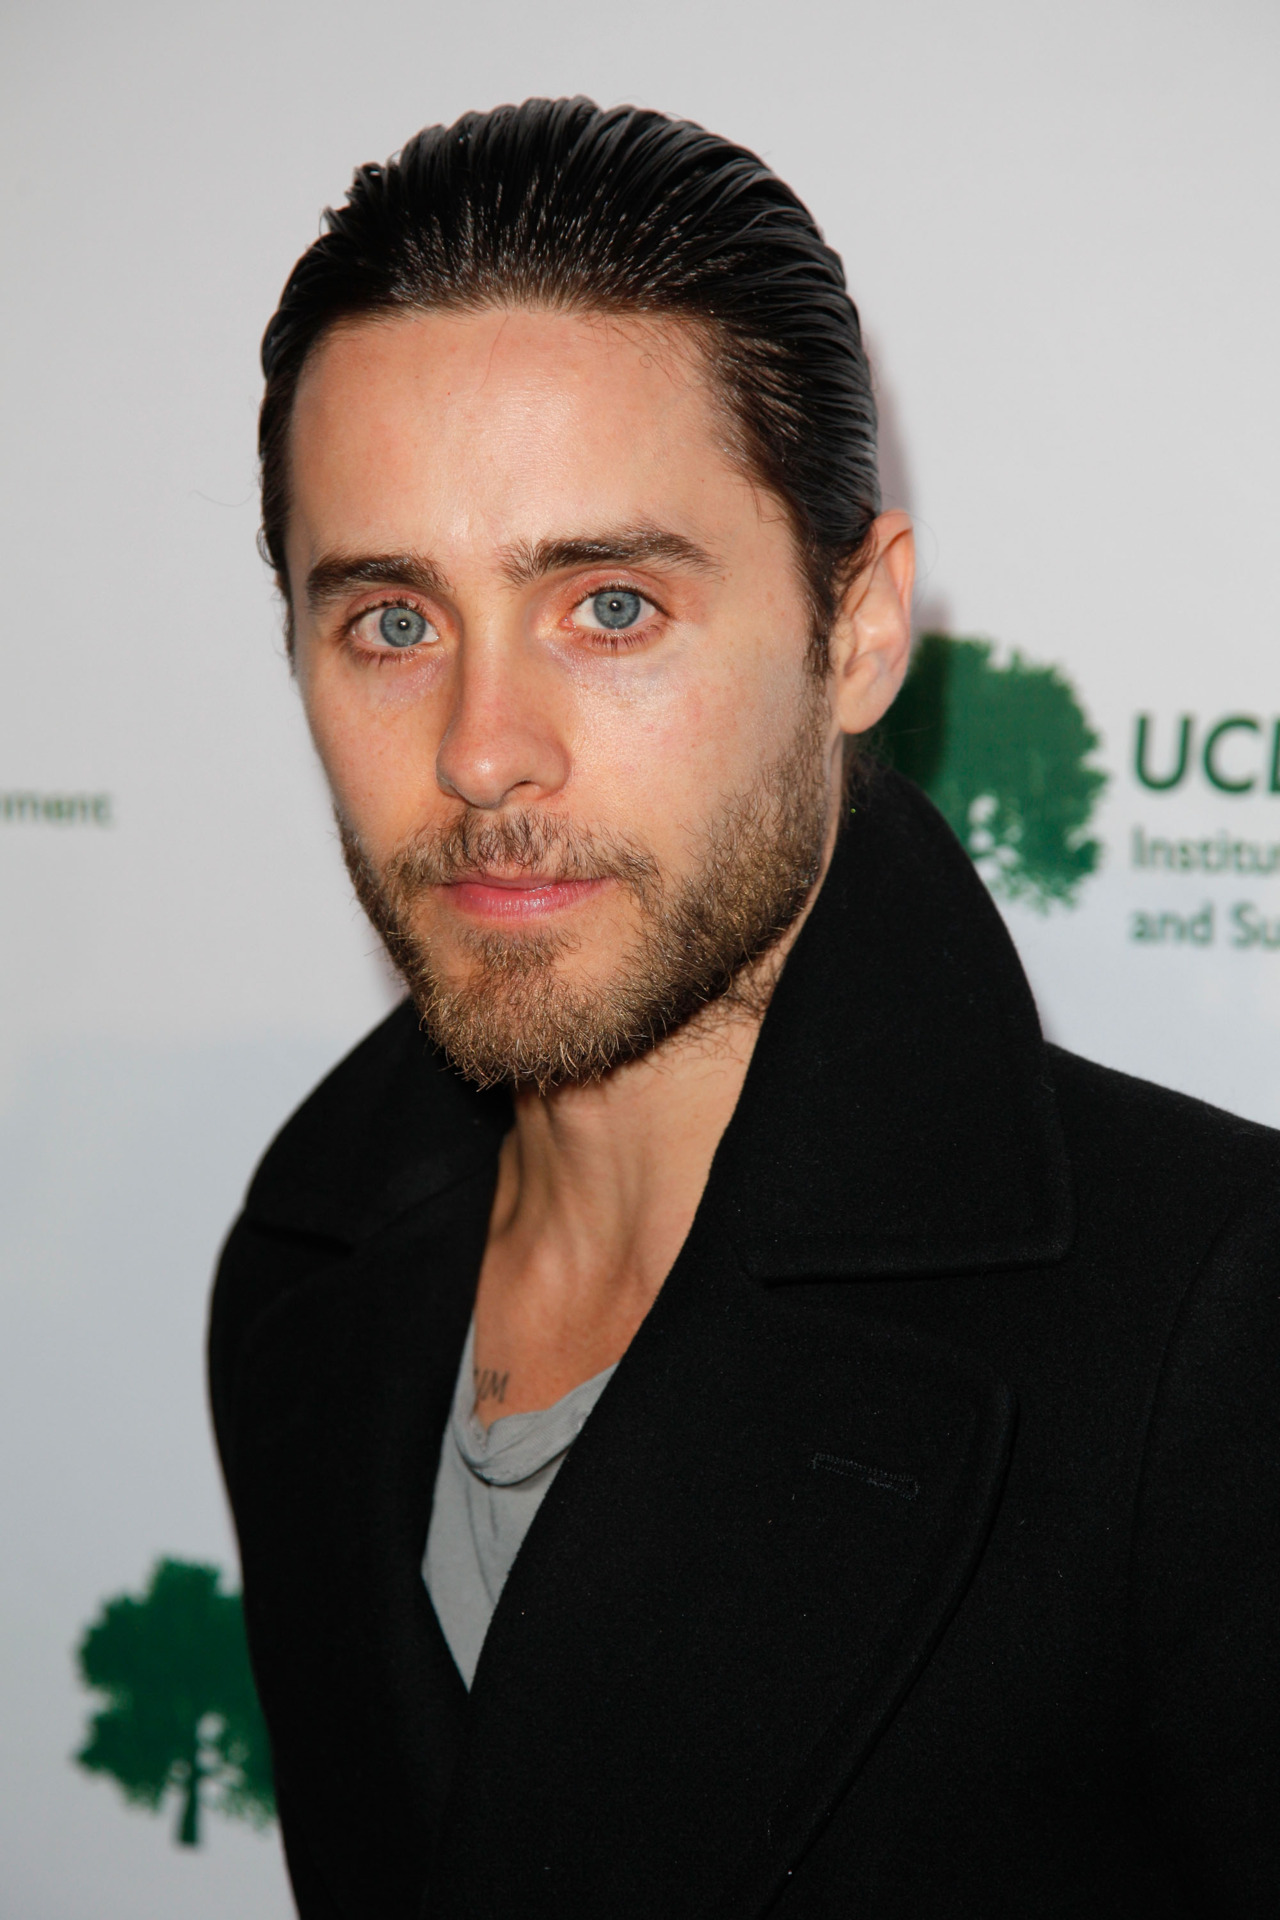 Jared Leto For Nylon Guys: Jared Leto At The UCLA Institute Of The Environment And